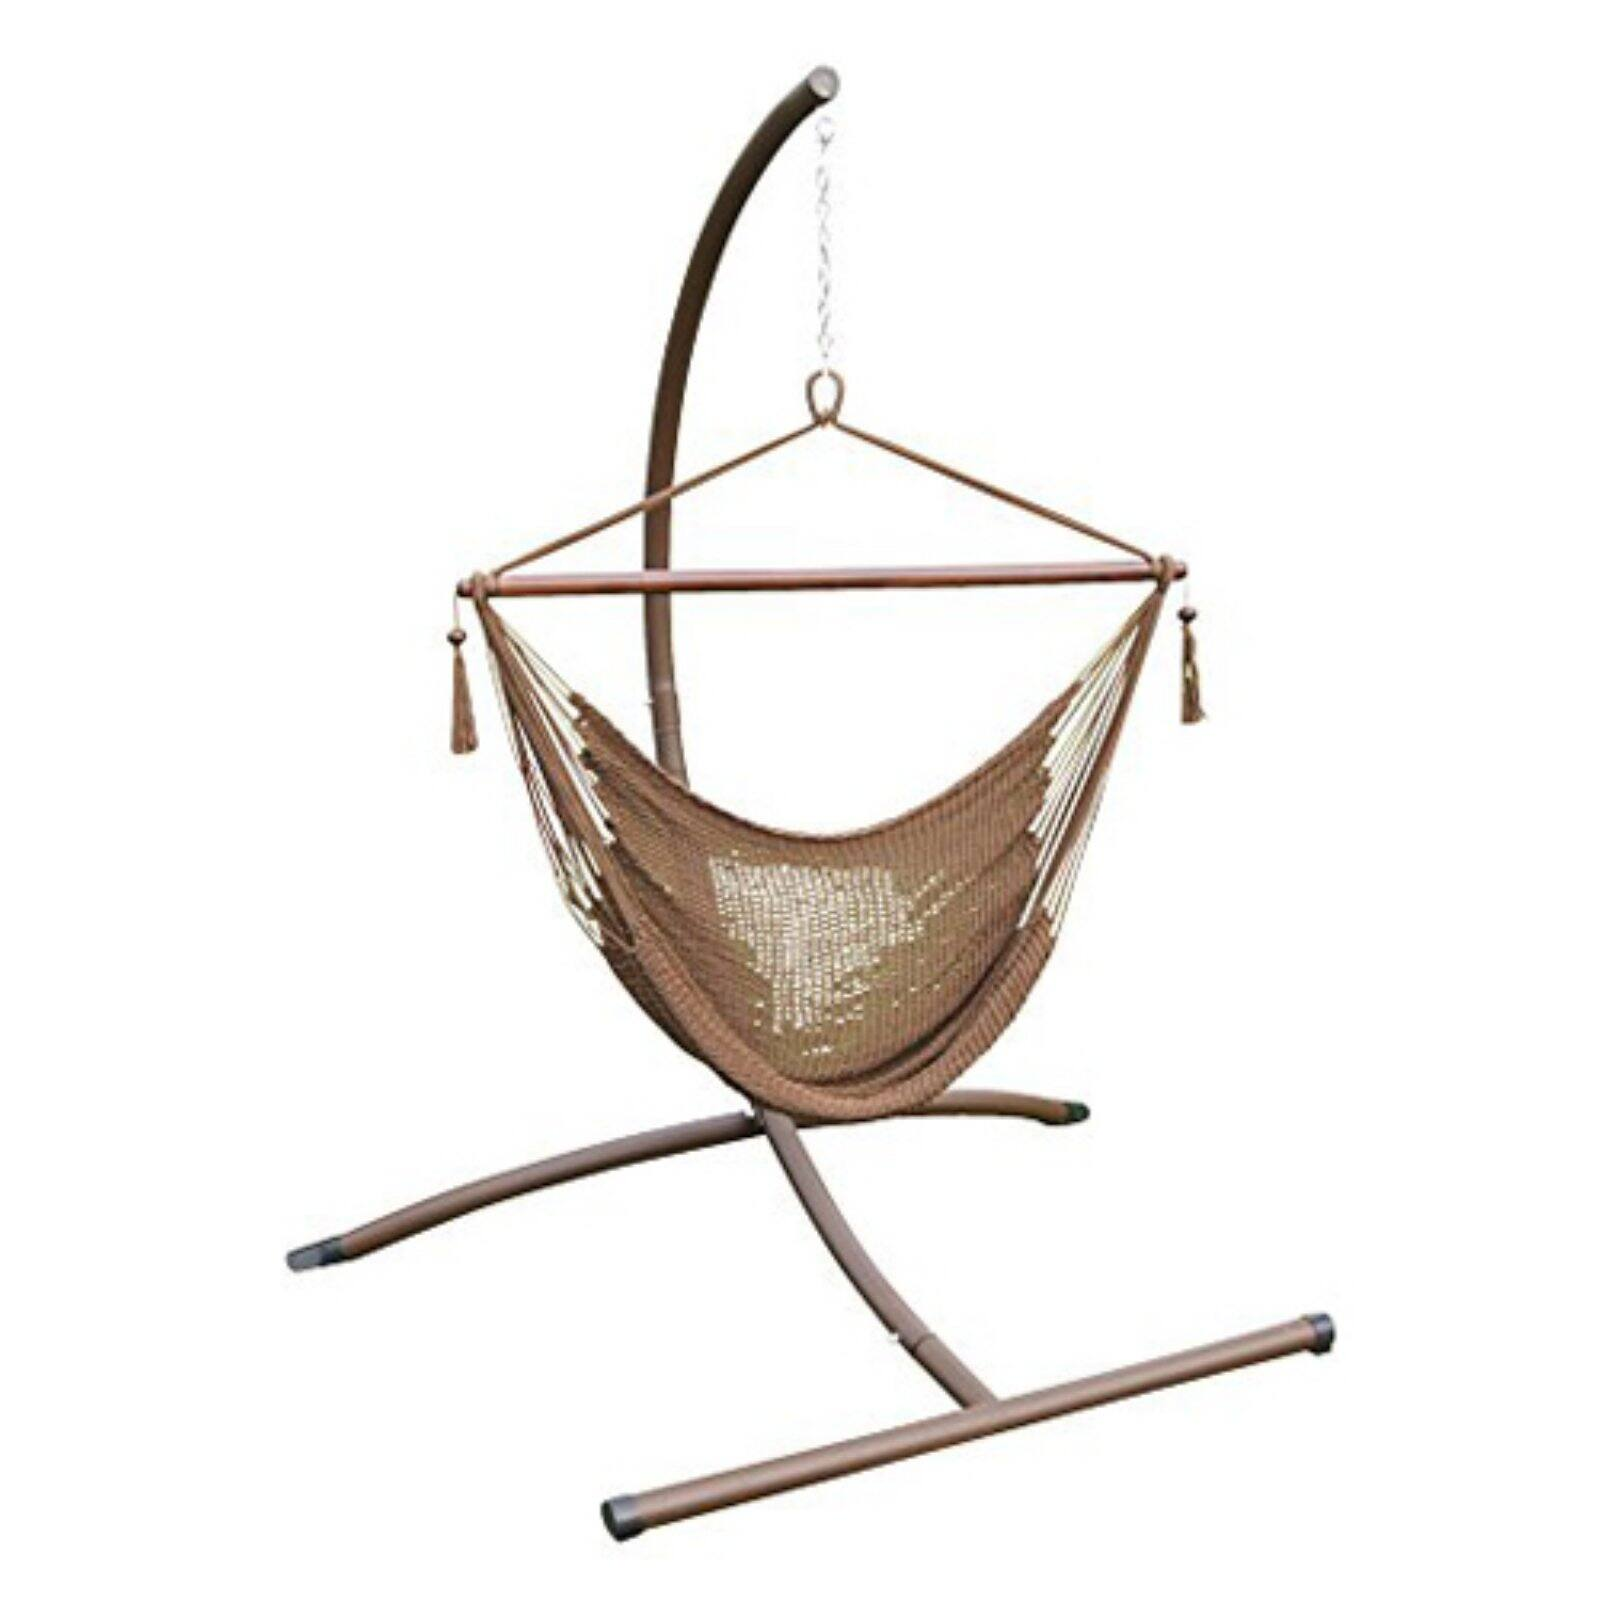 Phat Tommy Rope Hammock Chair and Stand Set - Walmart.com ...